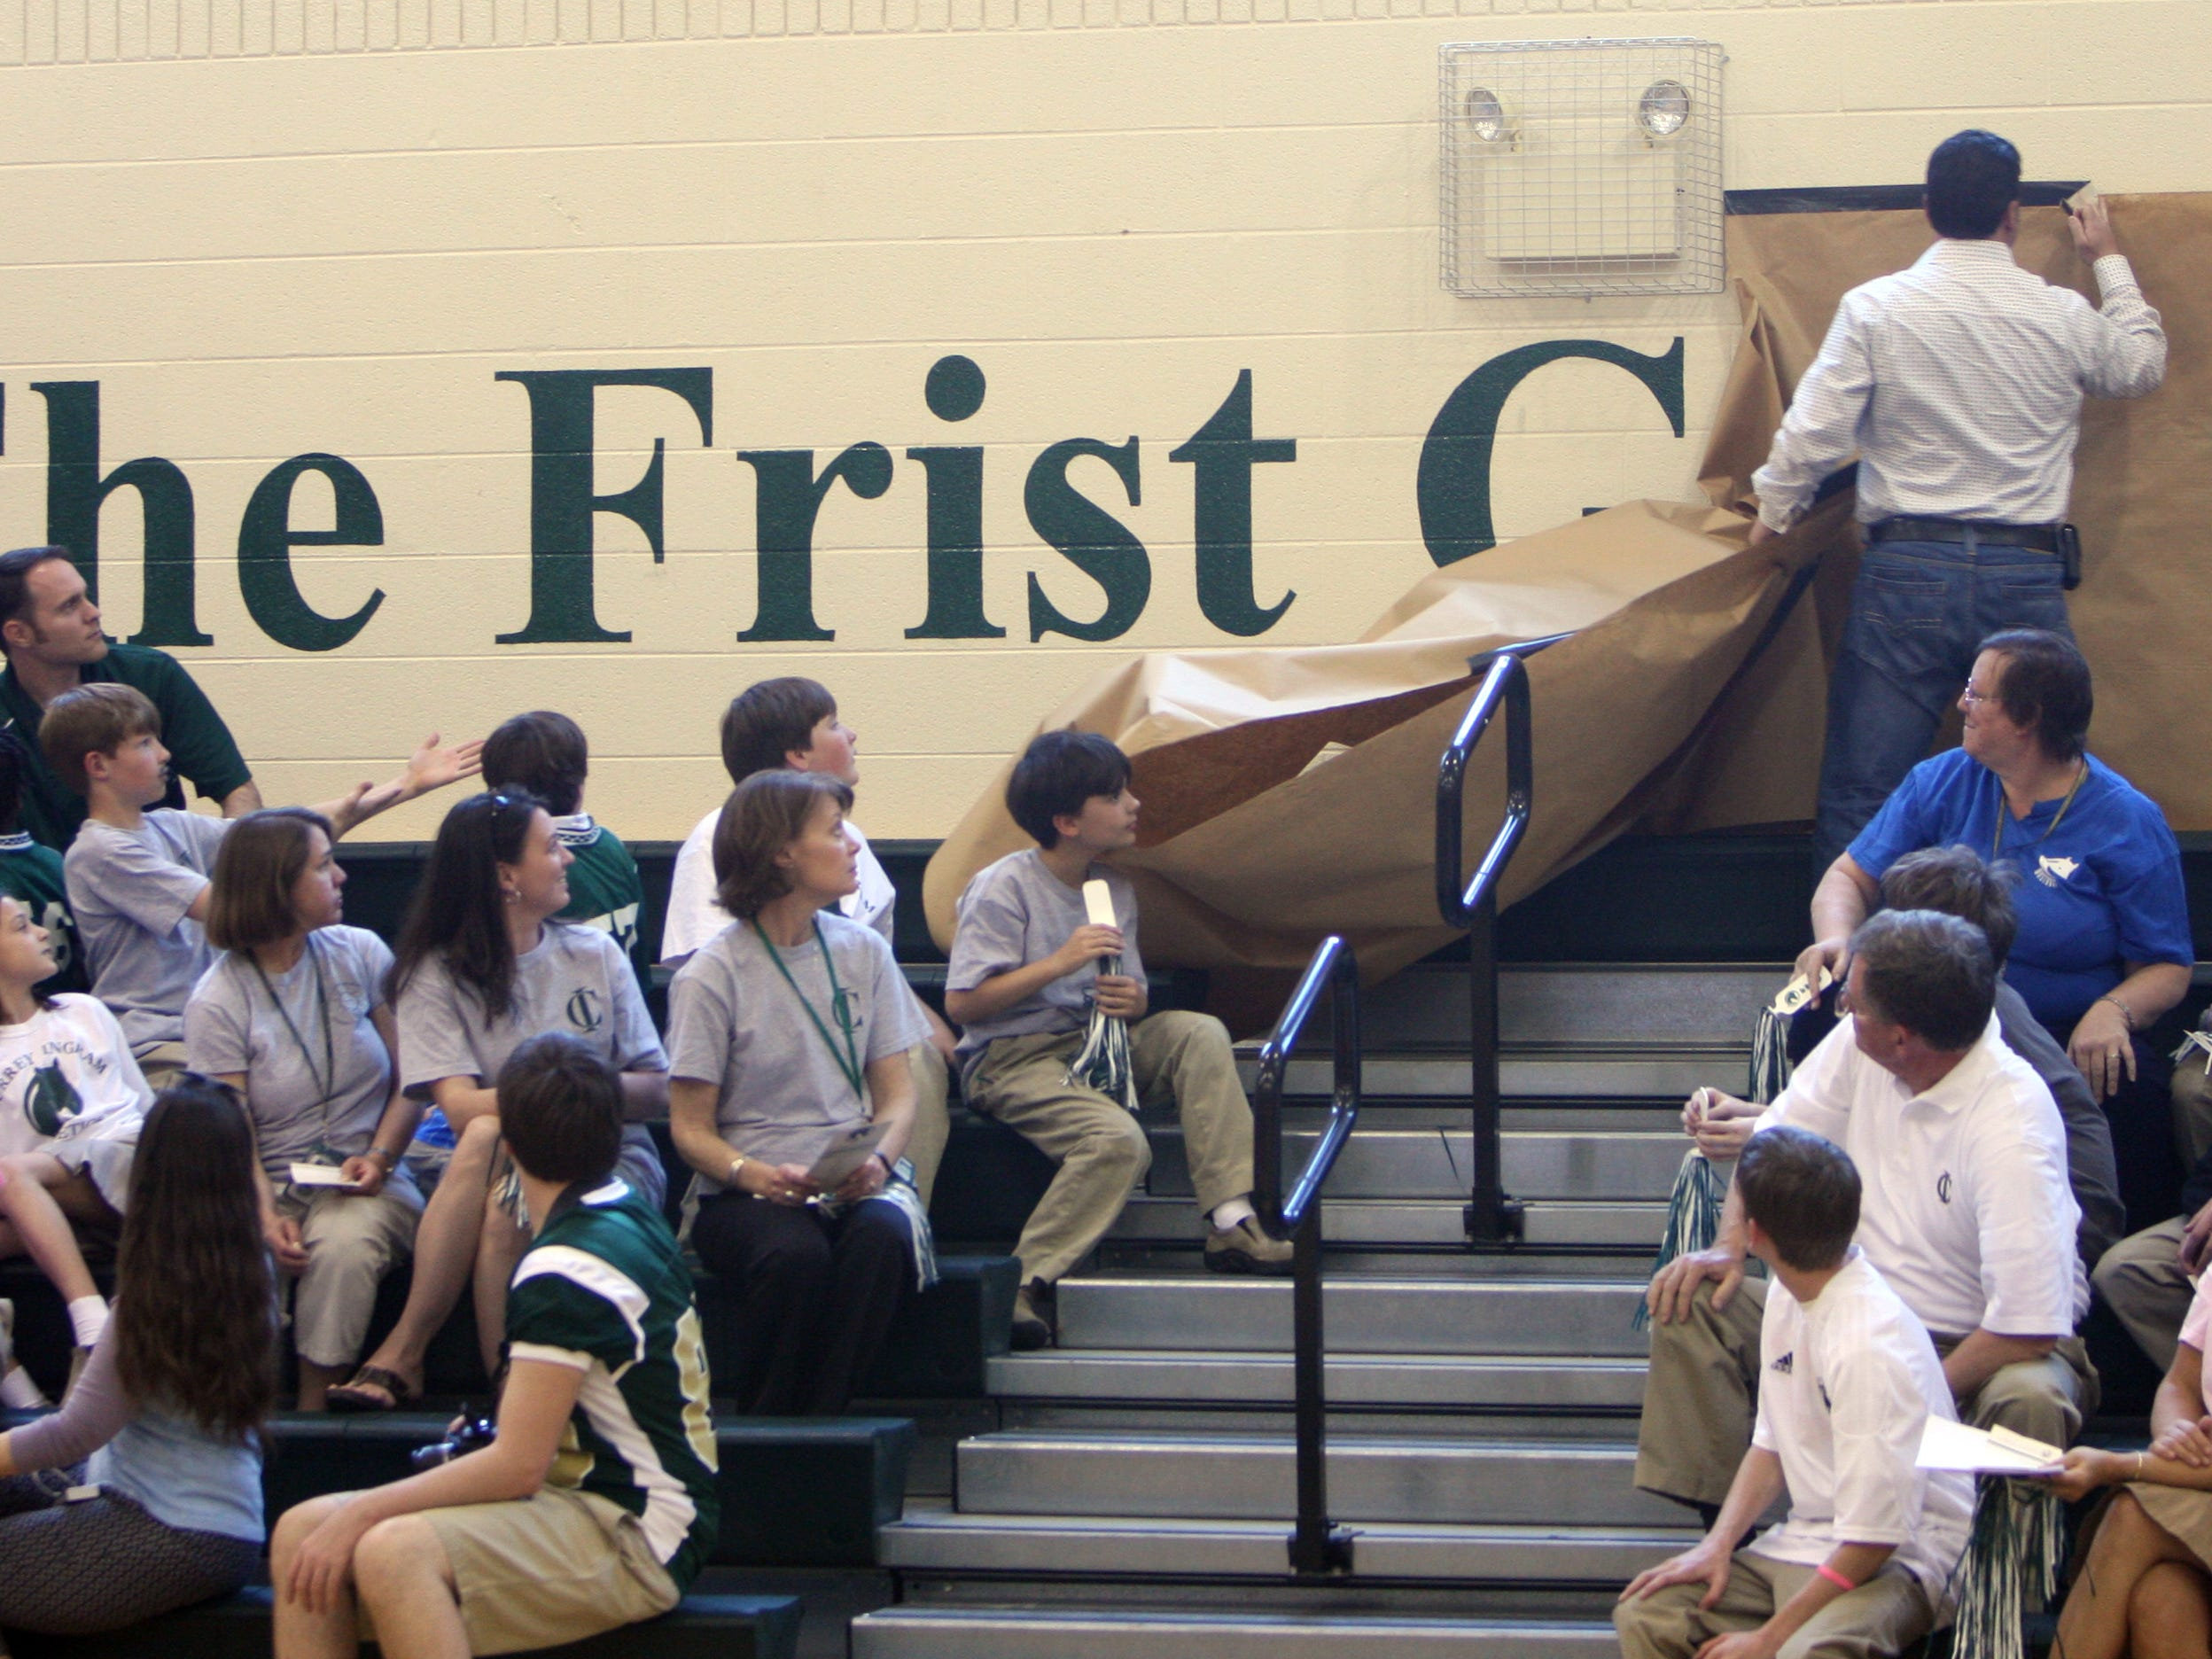 Currey Ingram Academy unveils a new name for school's existing gym in 2010. The Frist Gymnasium was presented during the opening and naming of Jan Carell Field House.